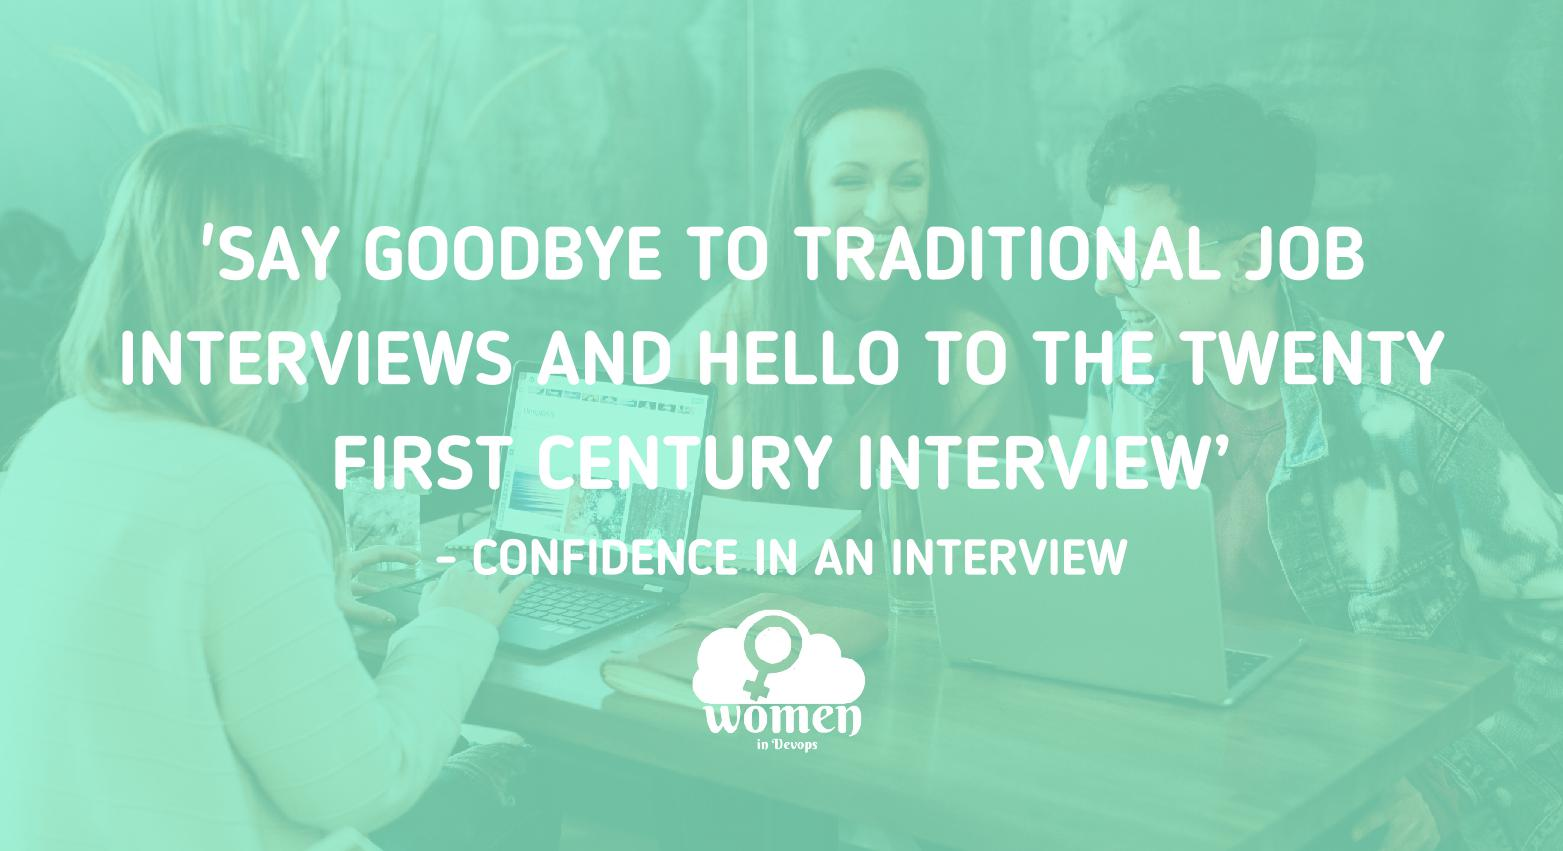 'SAY GOODBYE TO TRADITIONAL JOB INTERVIEWS AND HELLO TO THE TWENTY FIRST CENTURY INTERVIEW'